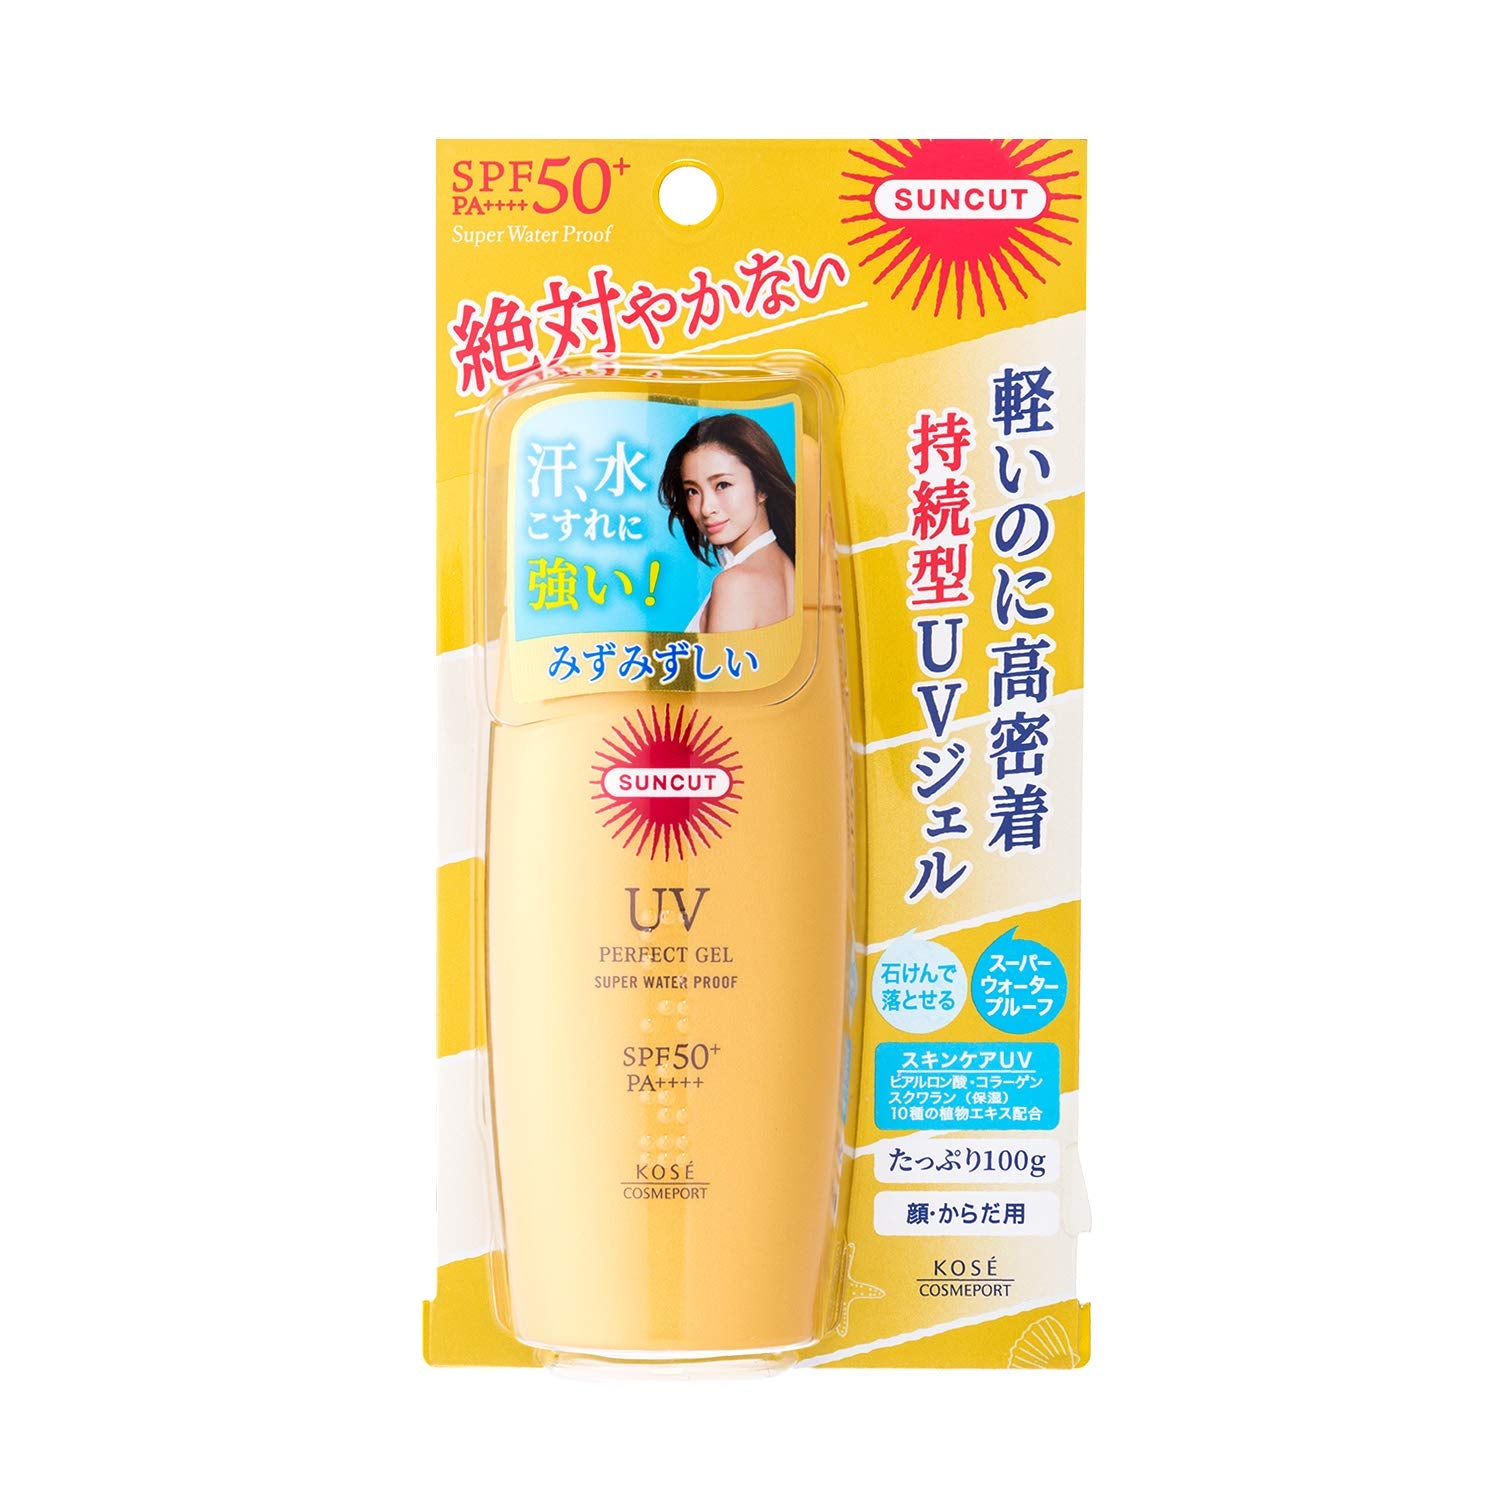 Suncut Super Waterproof Perfect UV Protect Gel SPF50+ PA++++ (100 g)